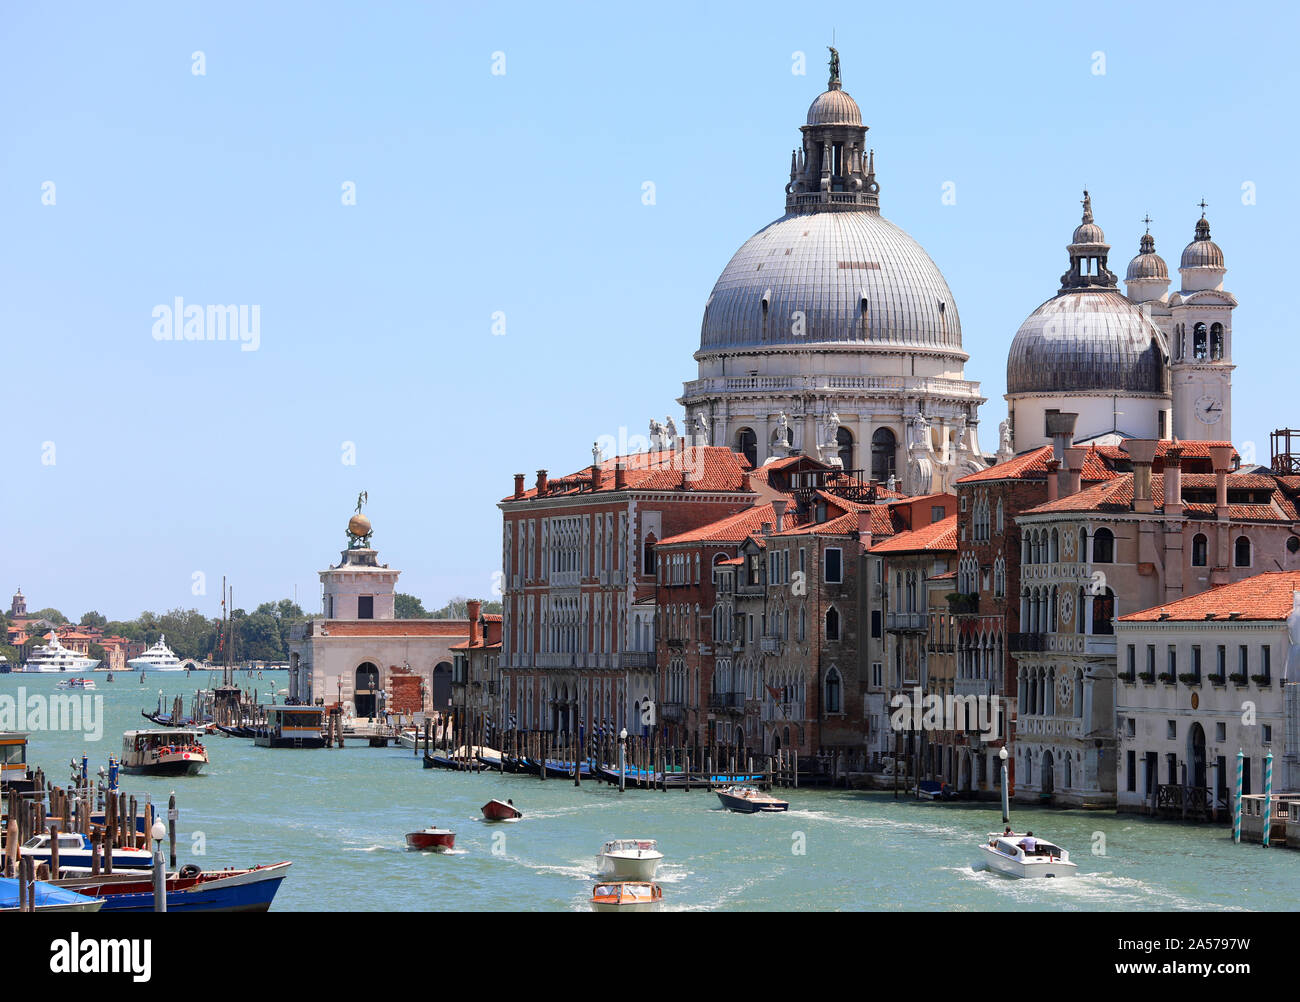 Dome of the Church of Madonna della Salute and boats on the Grand Canal the  maimn waterway of Venice in Italy Stock Photo - Alamy